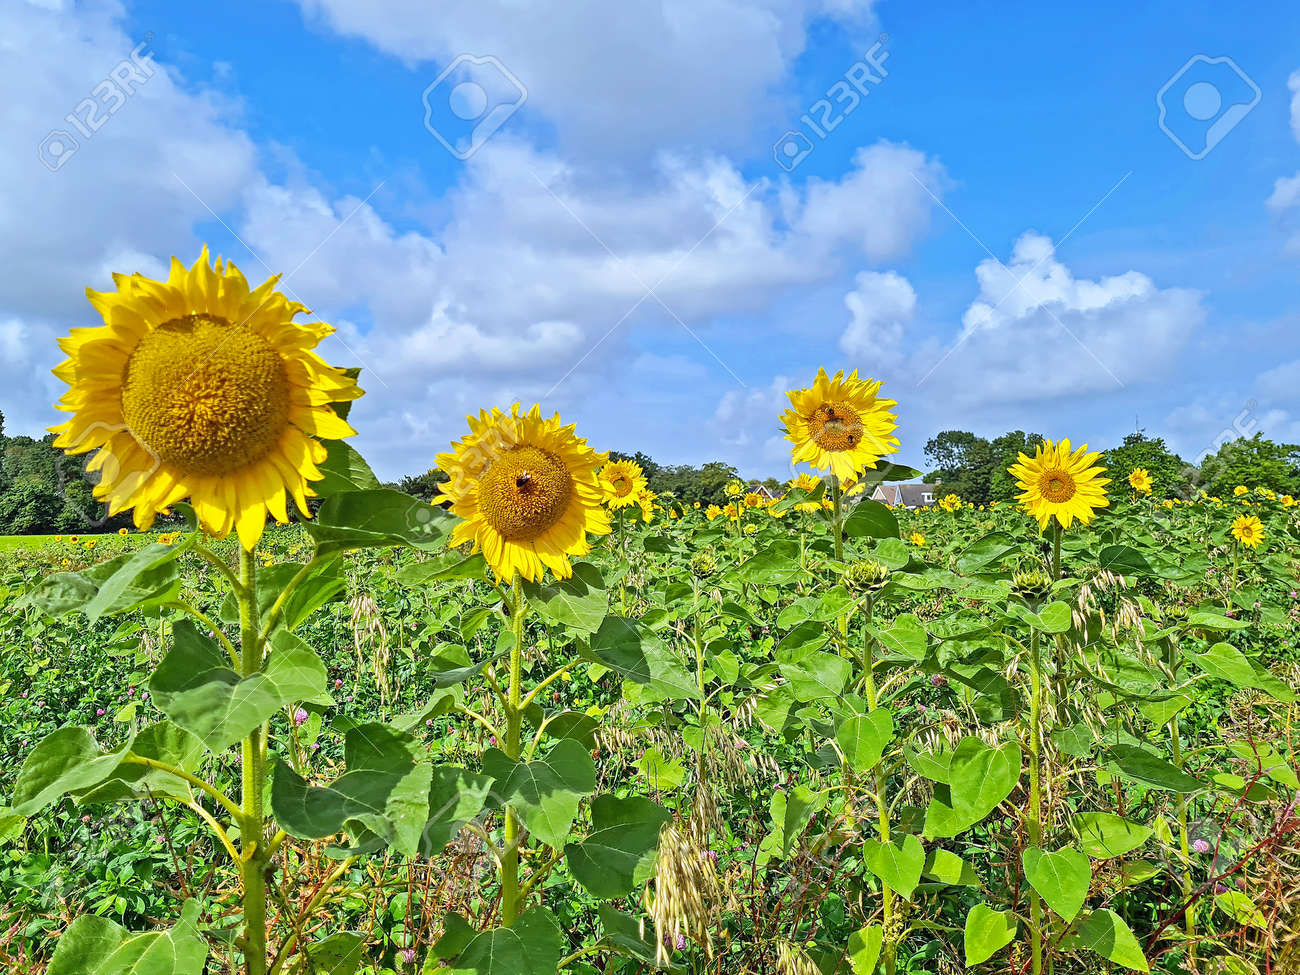 Blossoming sunflowers in the fields in the countryside from the Netherlands - 173297945